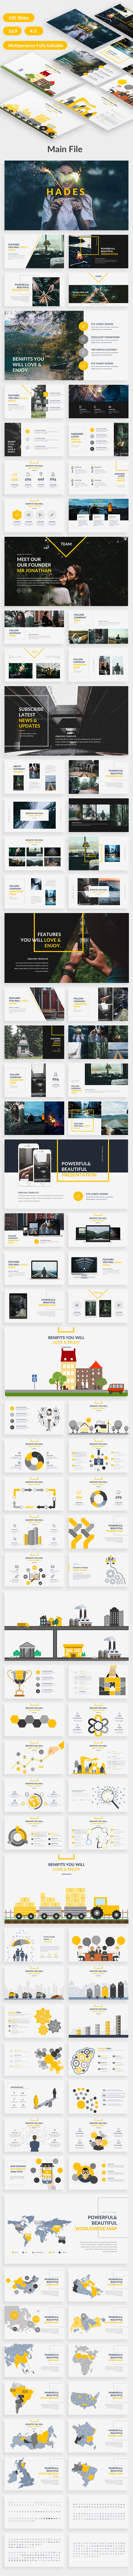 GraphicRiver Hades Creative Keynote Template 20365397